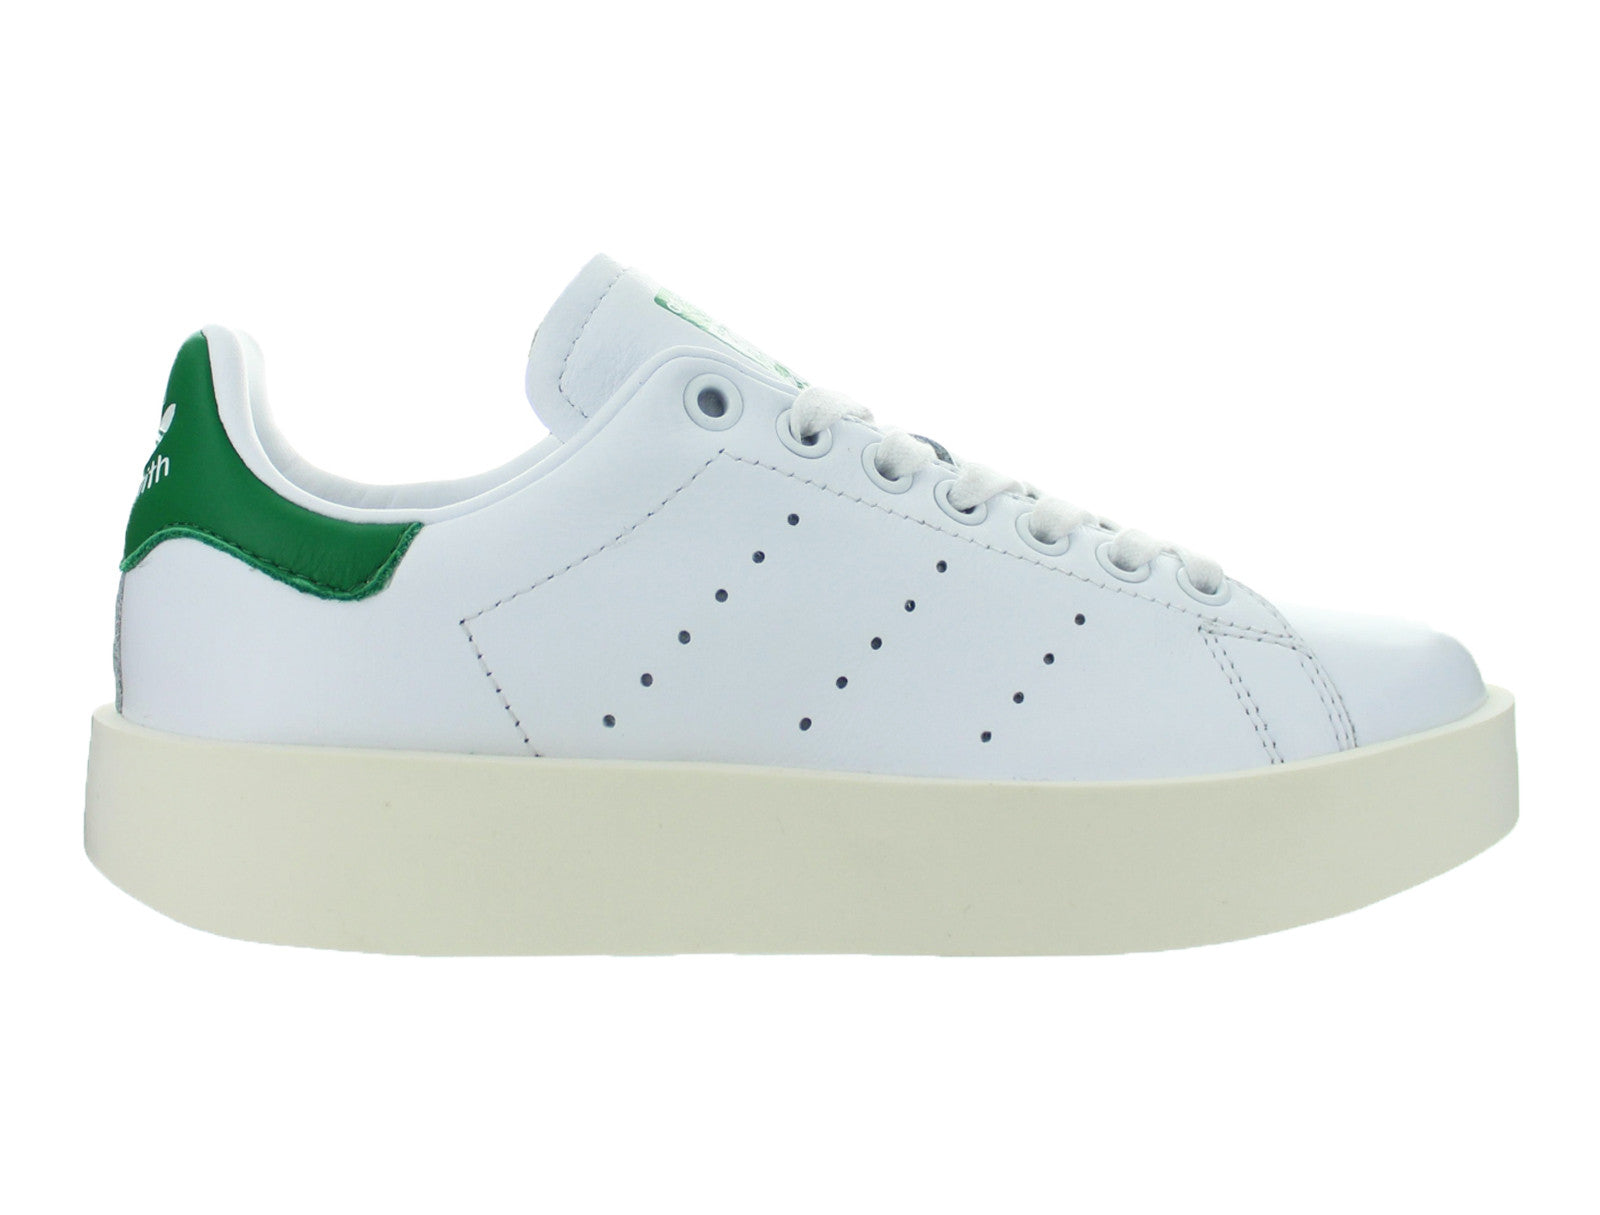 Details about Womens Adidas Stan Smith Bold W Footwear White Green S32266 a26a9799d